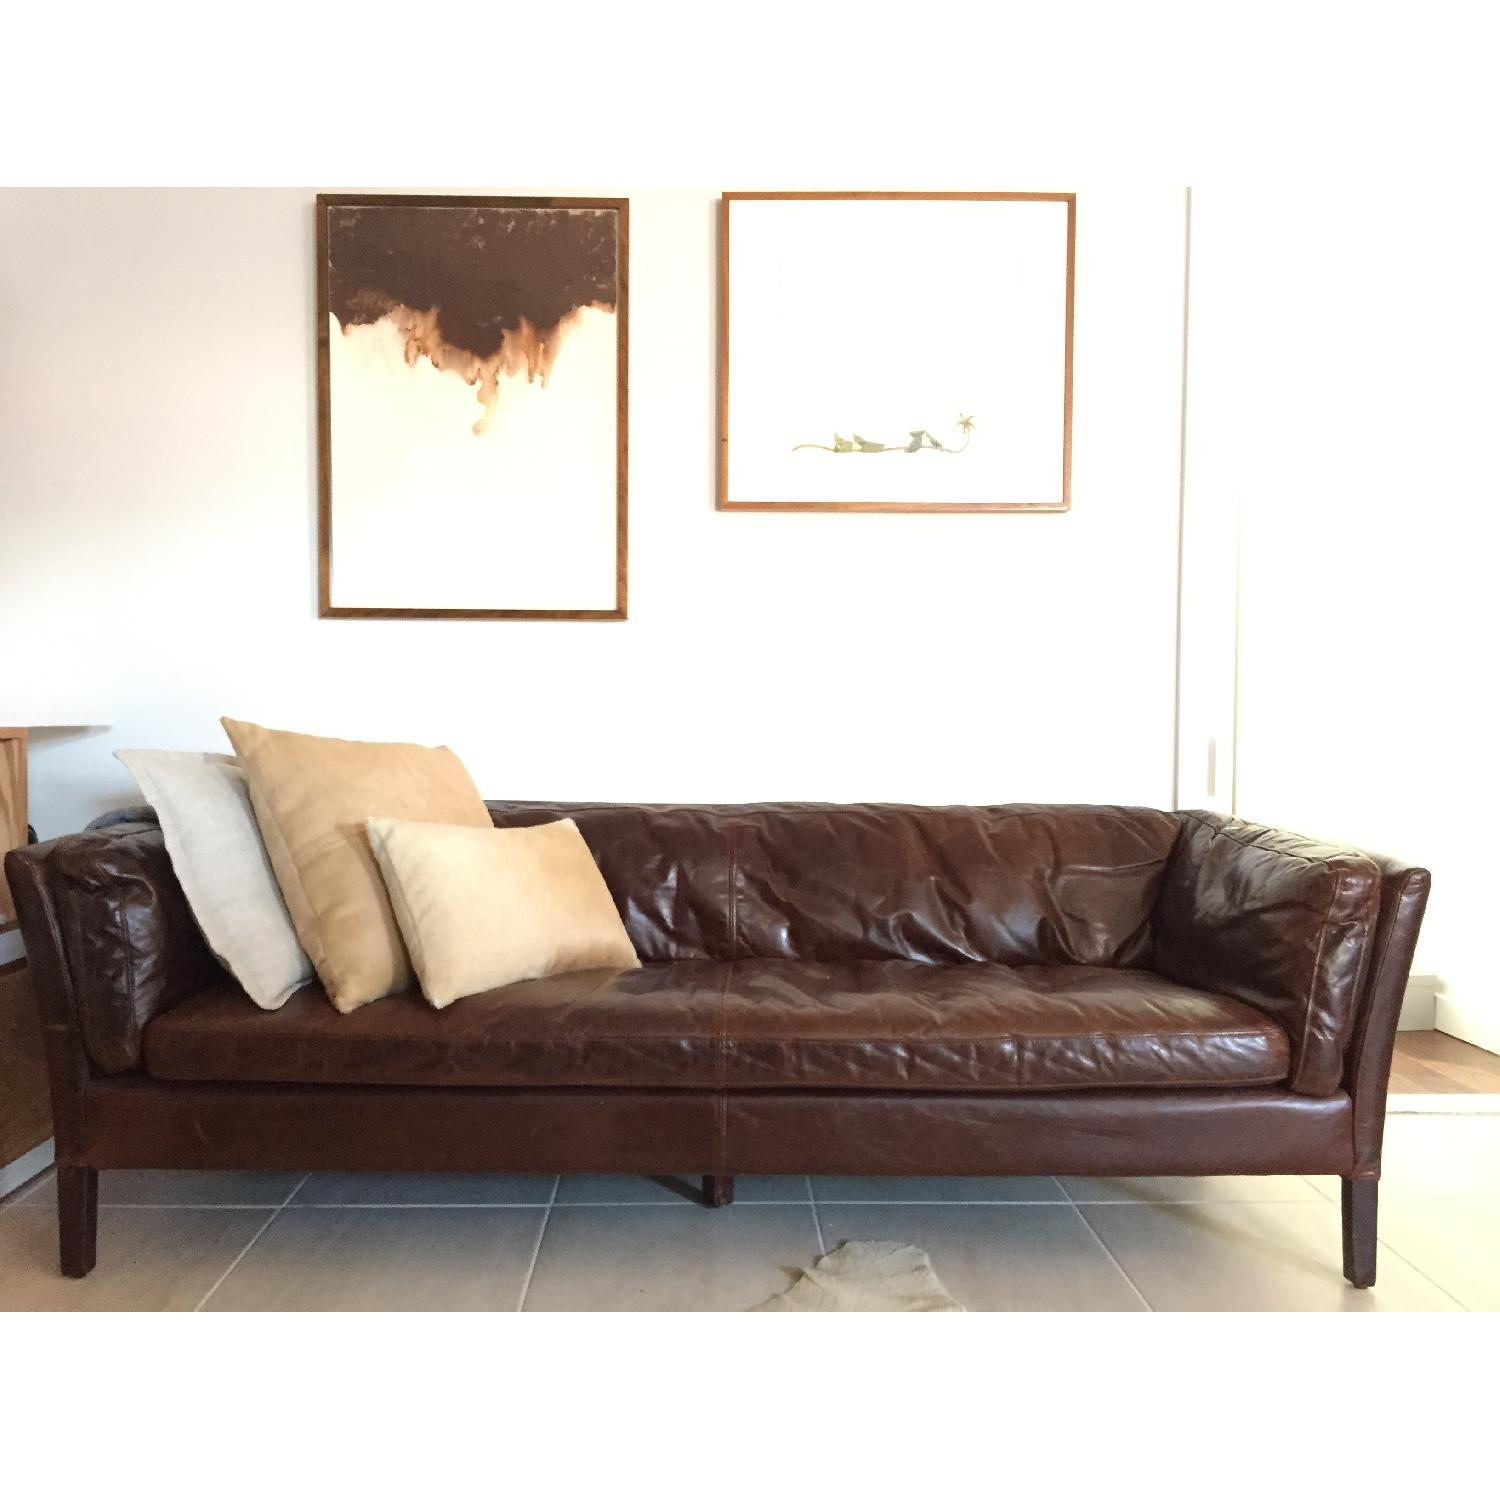 knislinge sofa idhult black review rowe dorset sleeper leather  thesofa